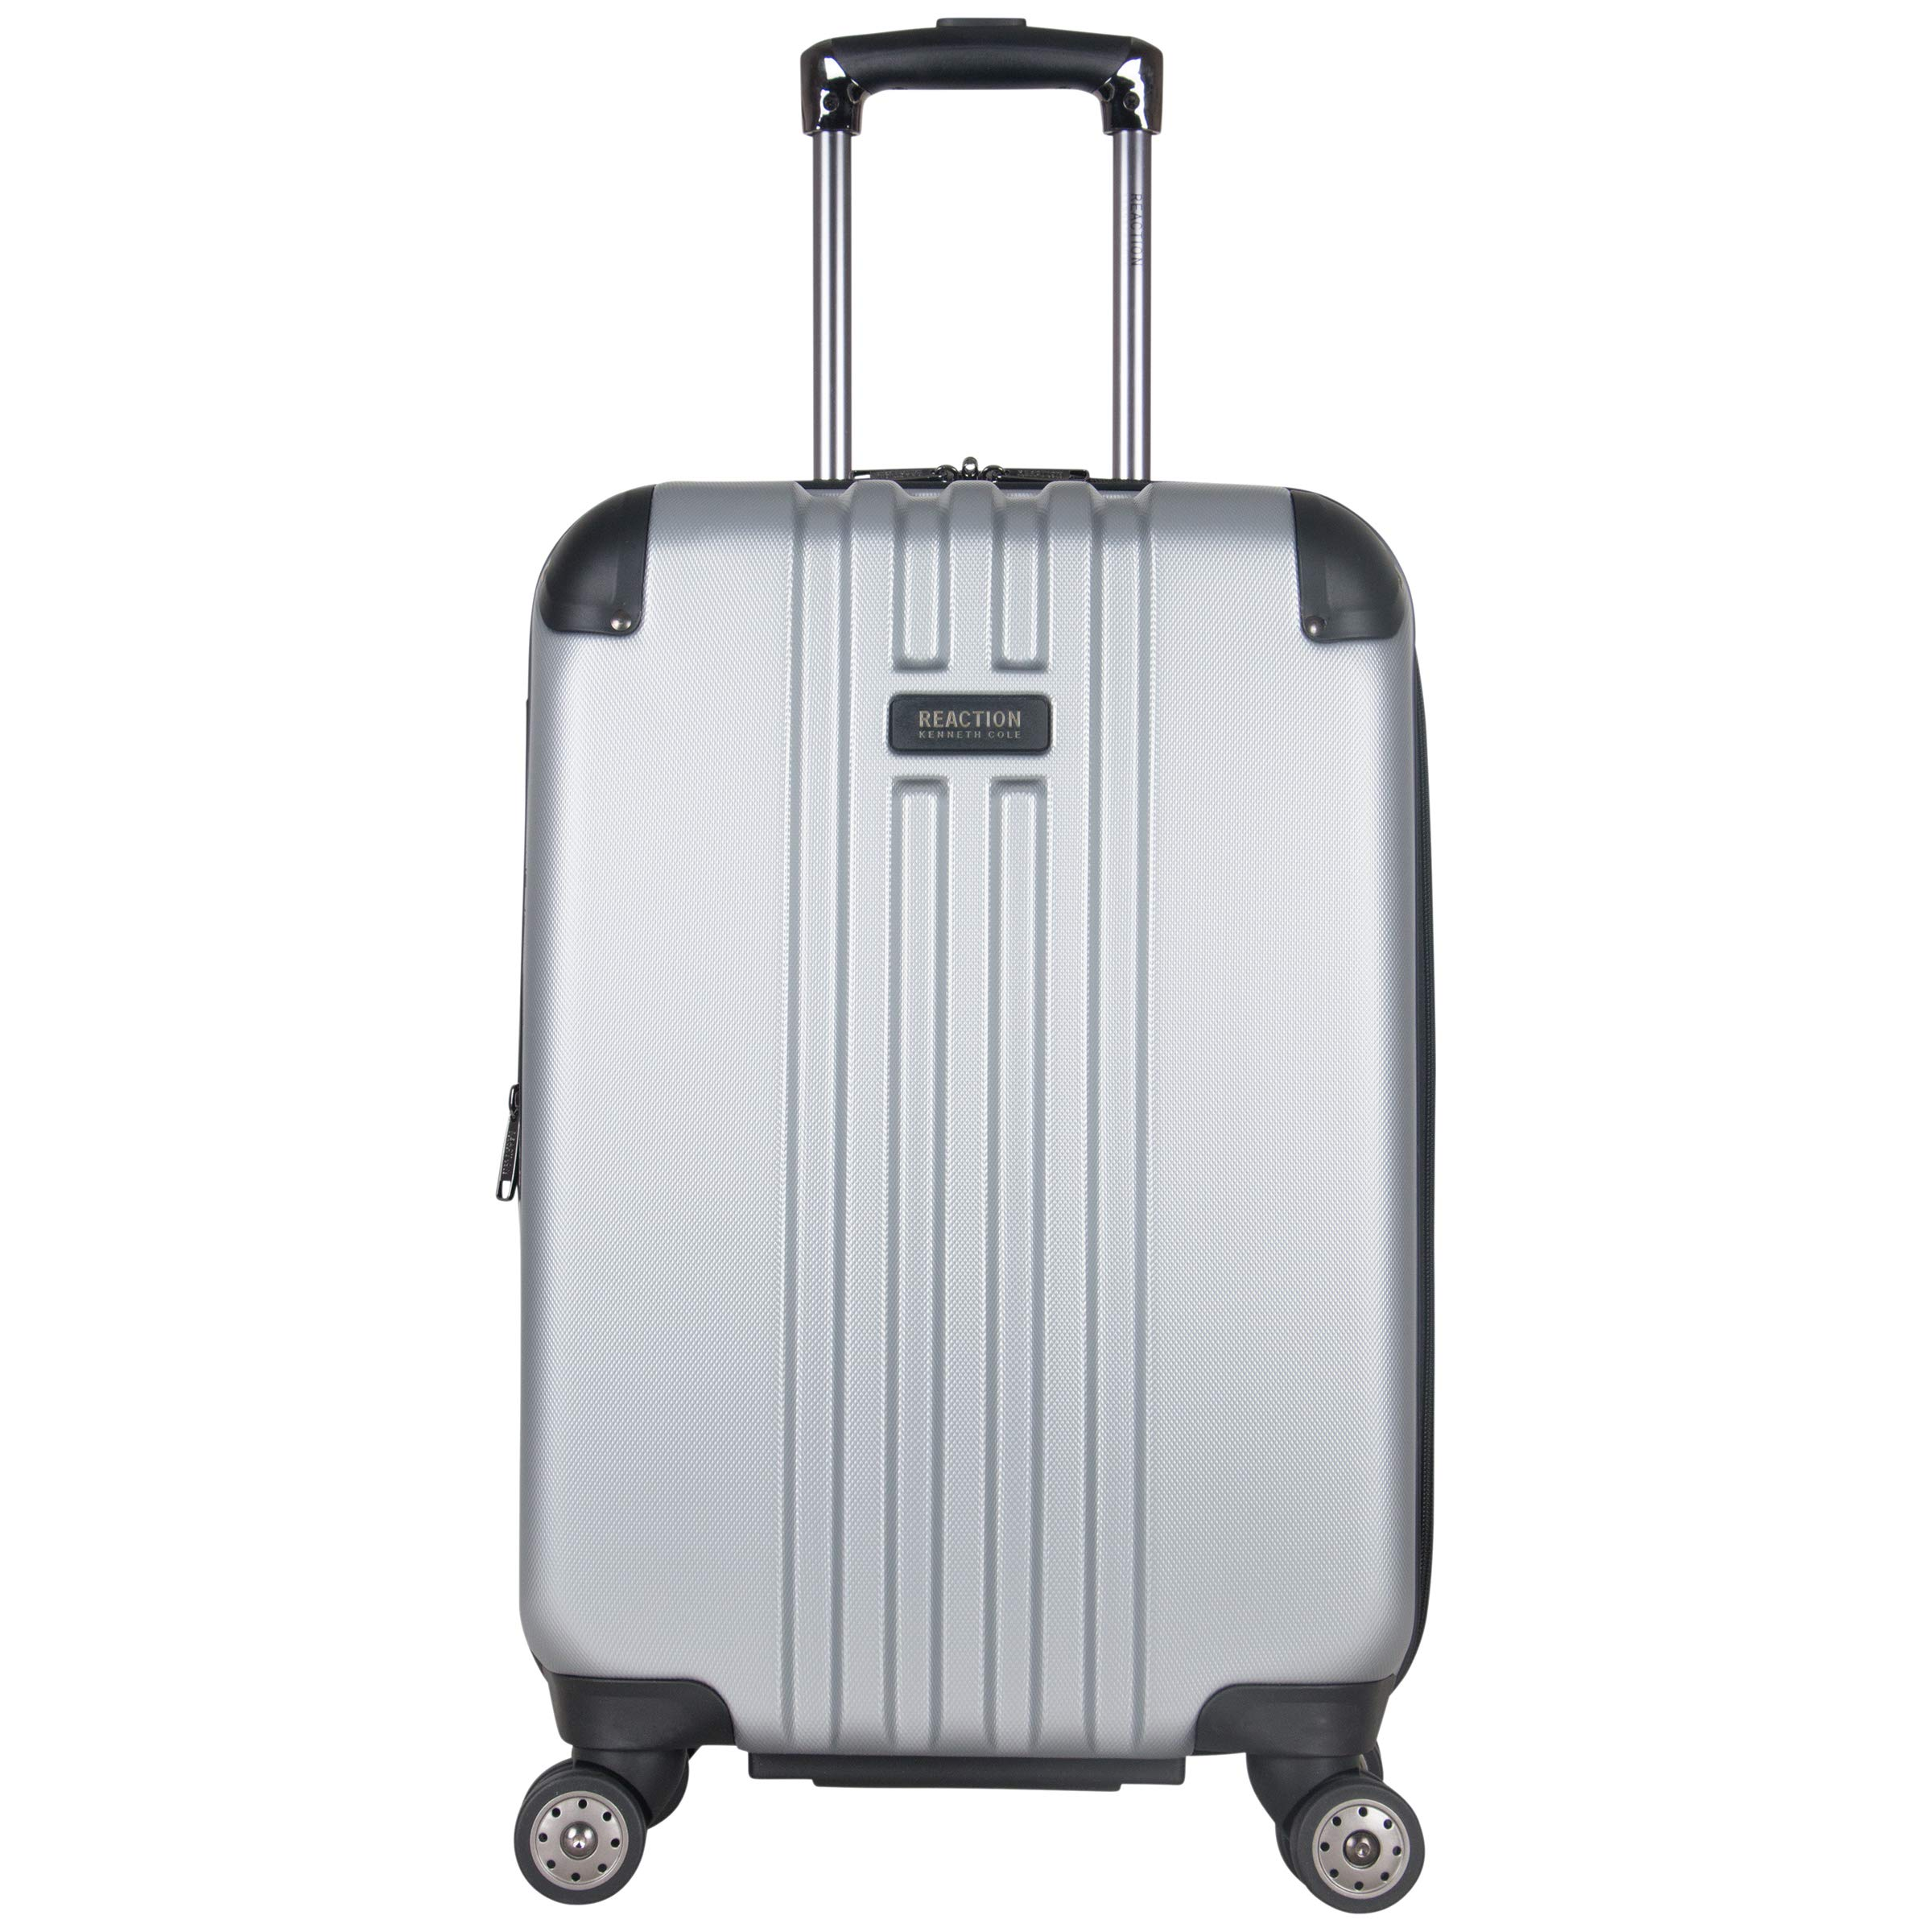 Kenneth Cole Reaction Reverb 20'' Hardside Expandable 8-Wheel Spinner Carry-on Luggage, Light Silver